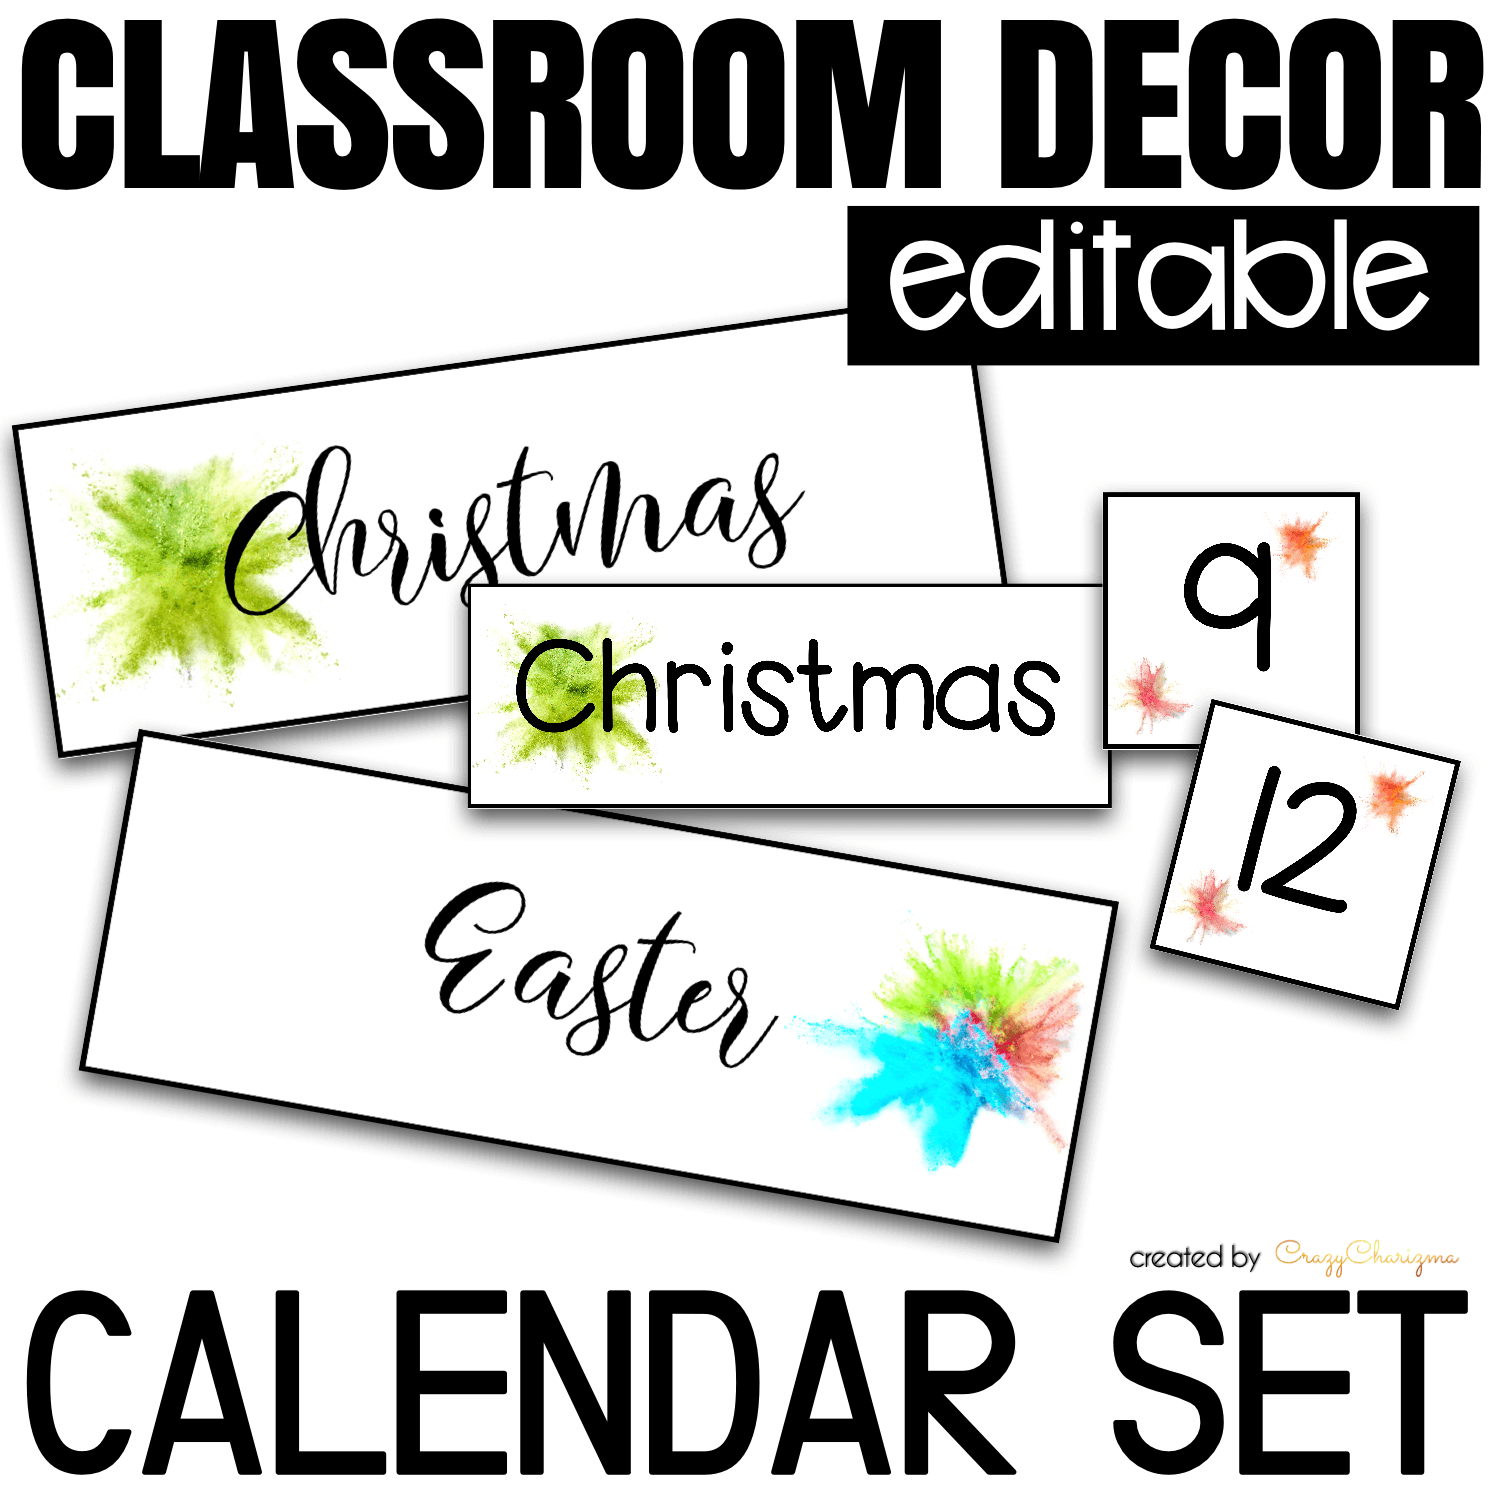 Looking for bright and clear EDITABLE calendar set? Spice your classroom with this visually appealing SPLASH classroom decor!